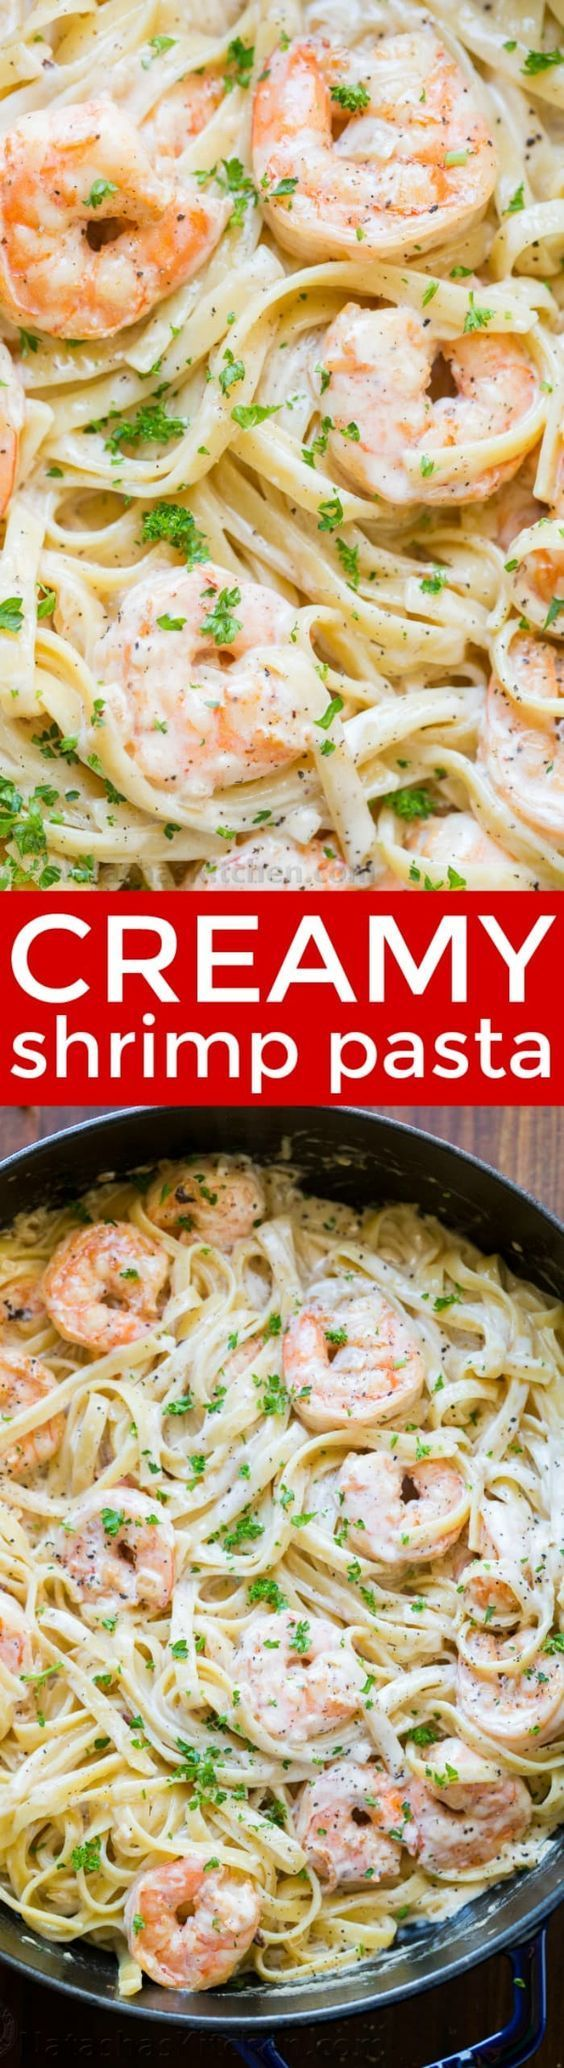 Creamy Shrimp Pasta reminds me of my favorite dish at Olive Garden with plump juicy shrimp and the easiest alfredo sauce. Rave reviews on this shrimp pasta! | natashaskitchen.com